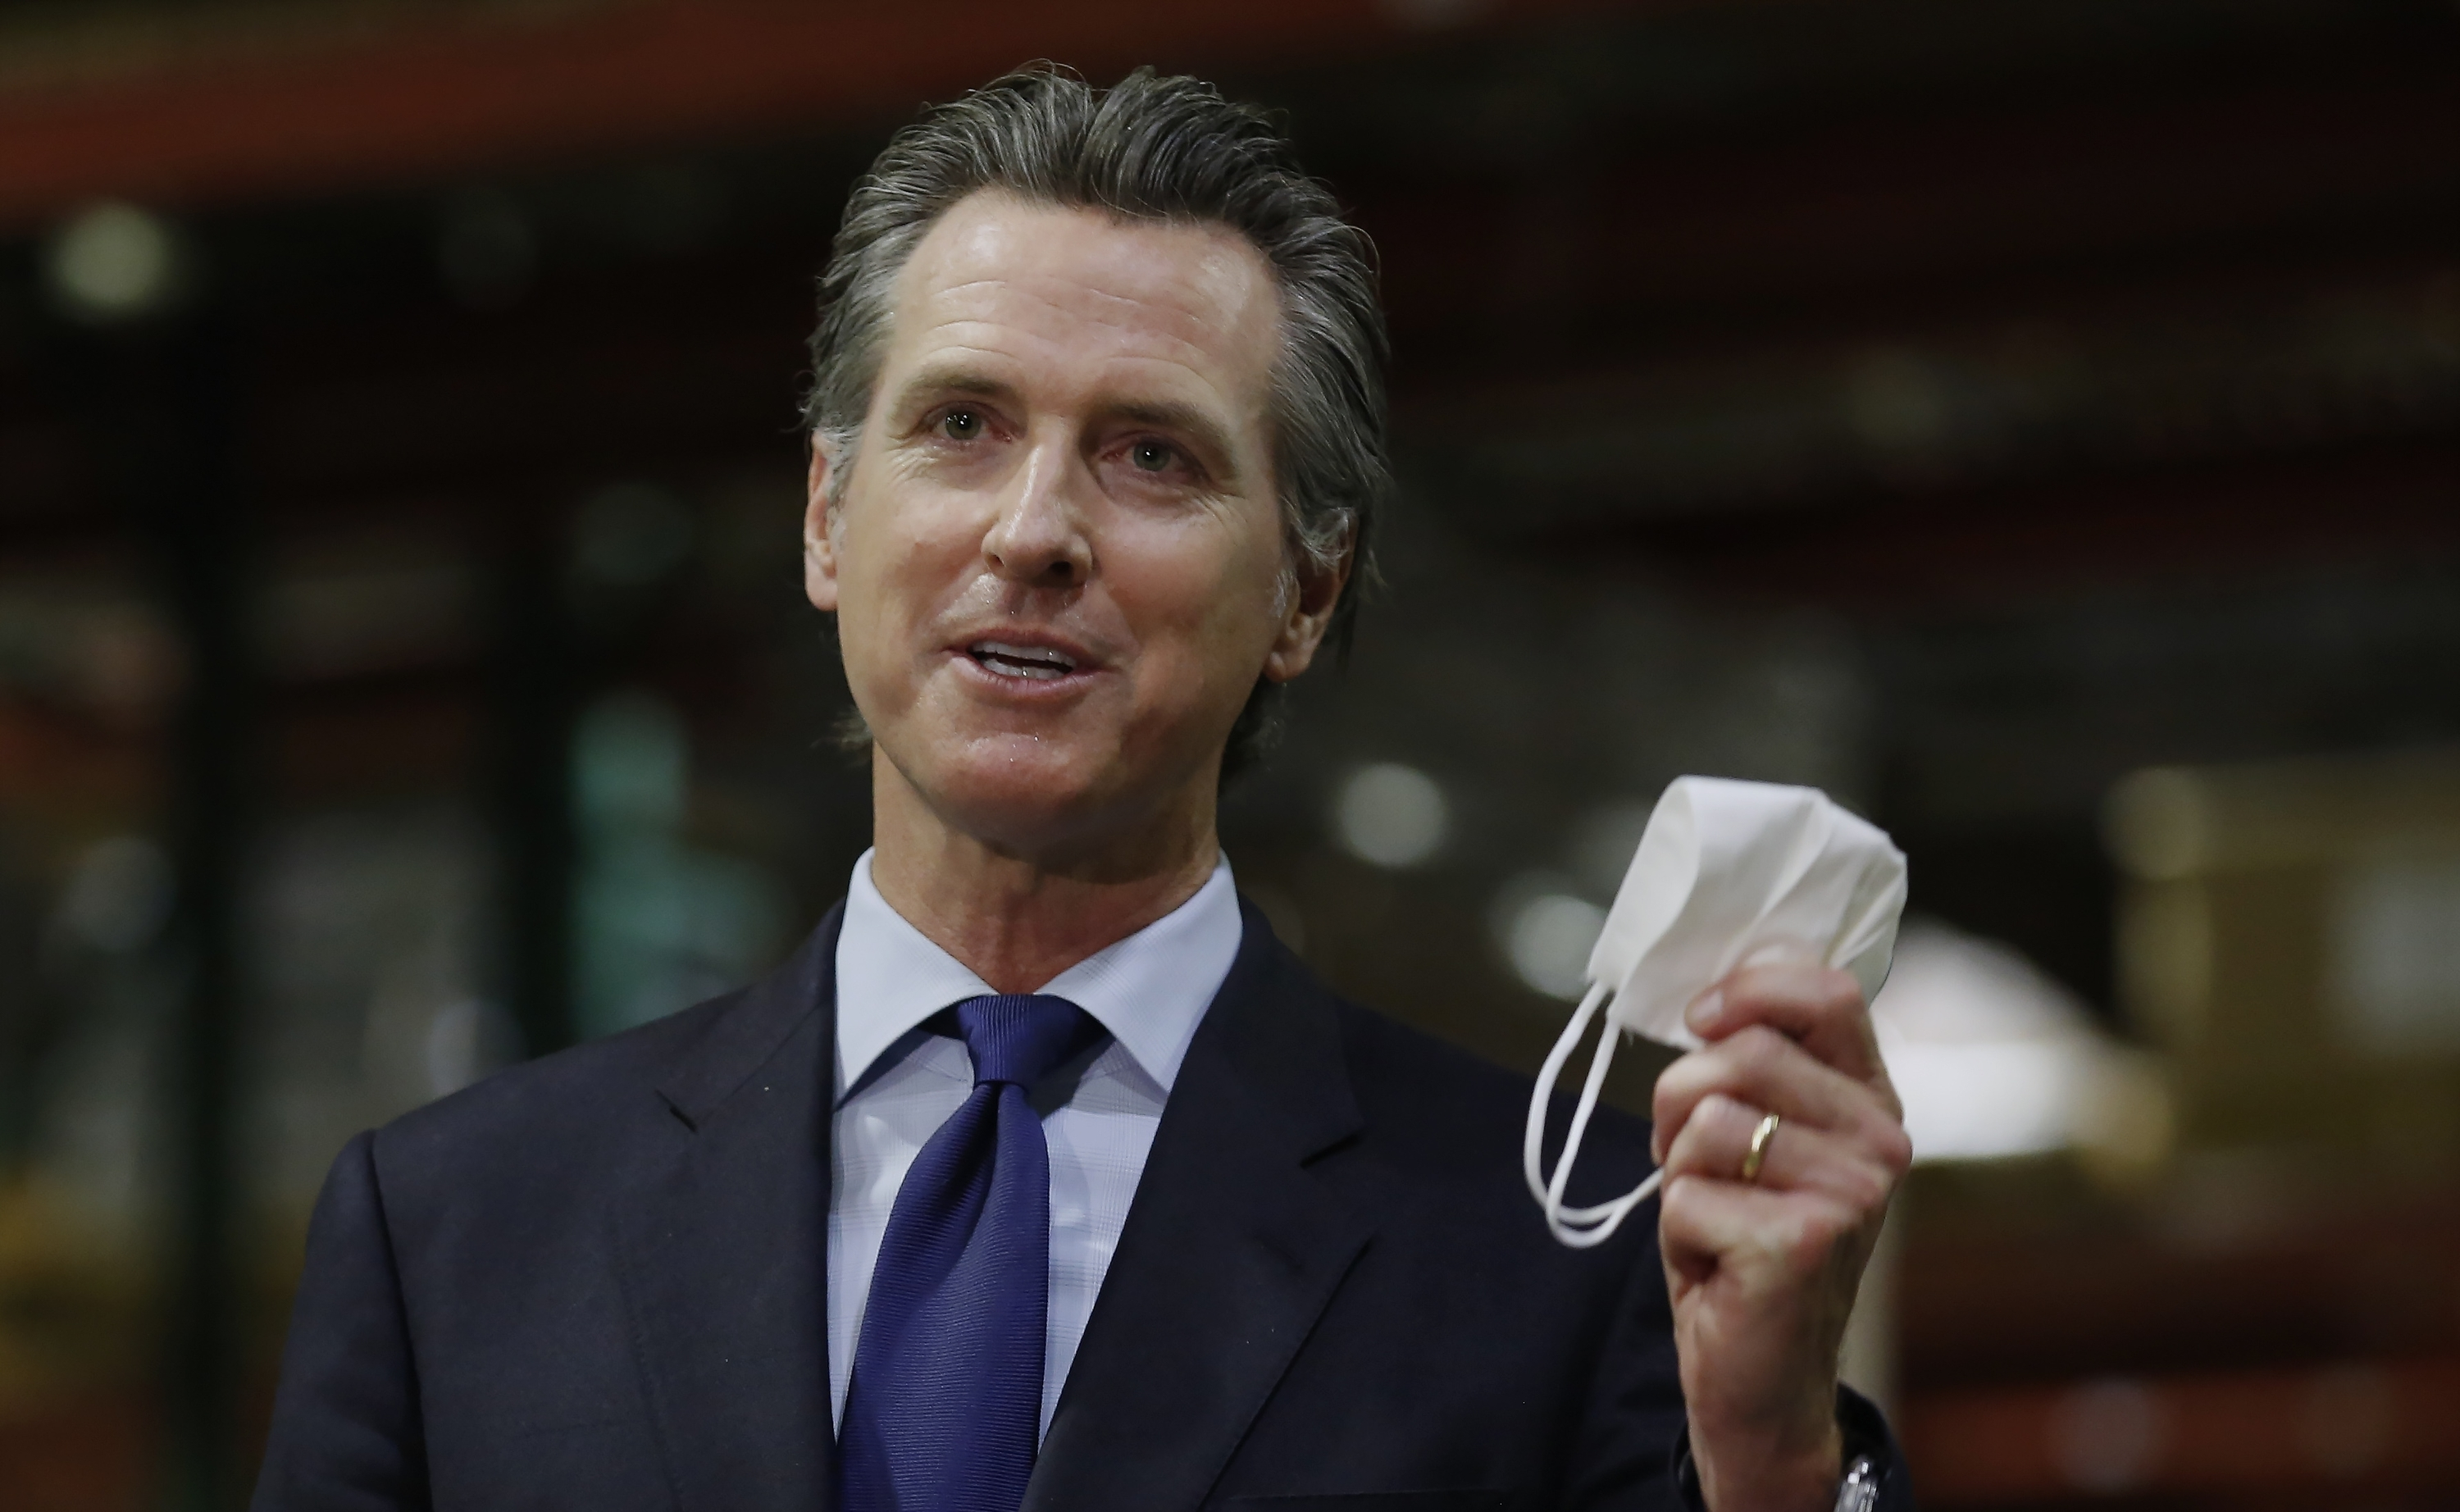 Gov. Gavin Newsom holds a face mask as he urges people to wear them to fight the spread of the coronavirus during a news conference in Rancho Cordova, Calif on June 26, 2020.